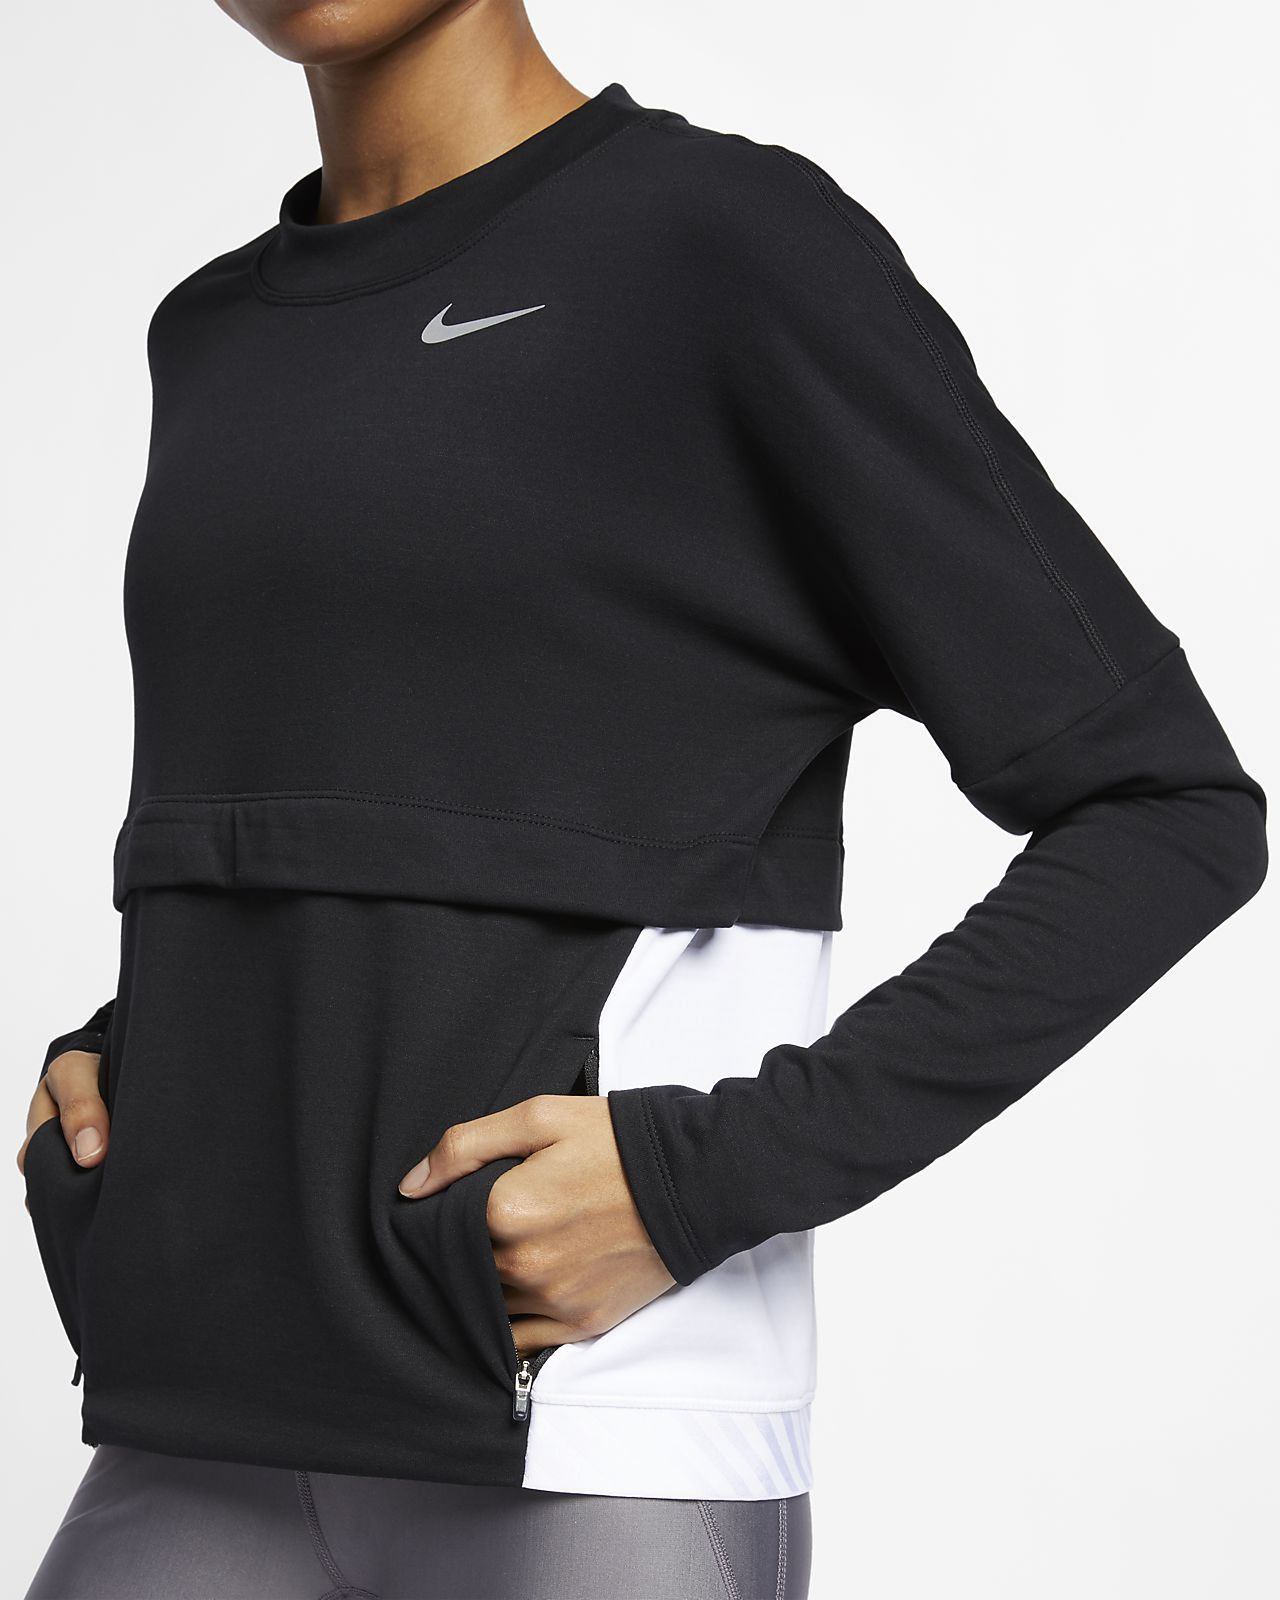 Nike Therma-Sphere Women's Running Top